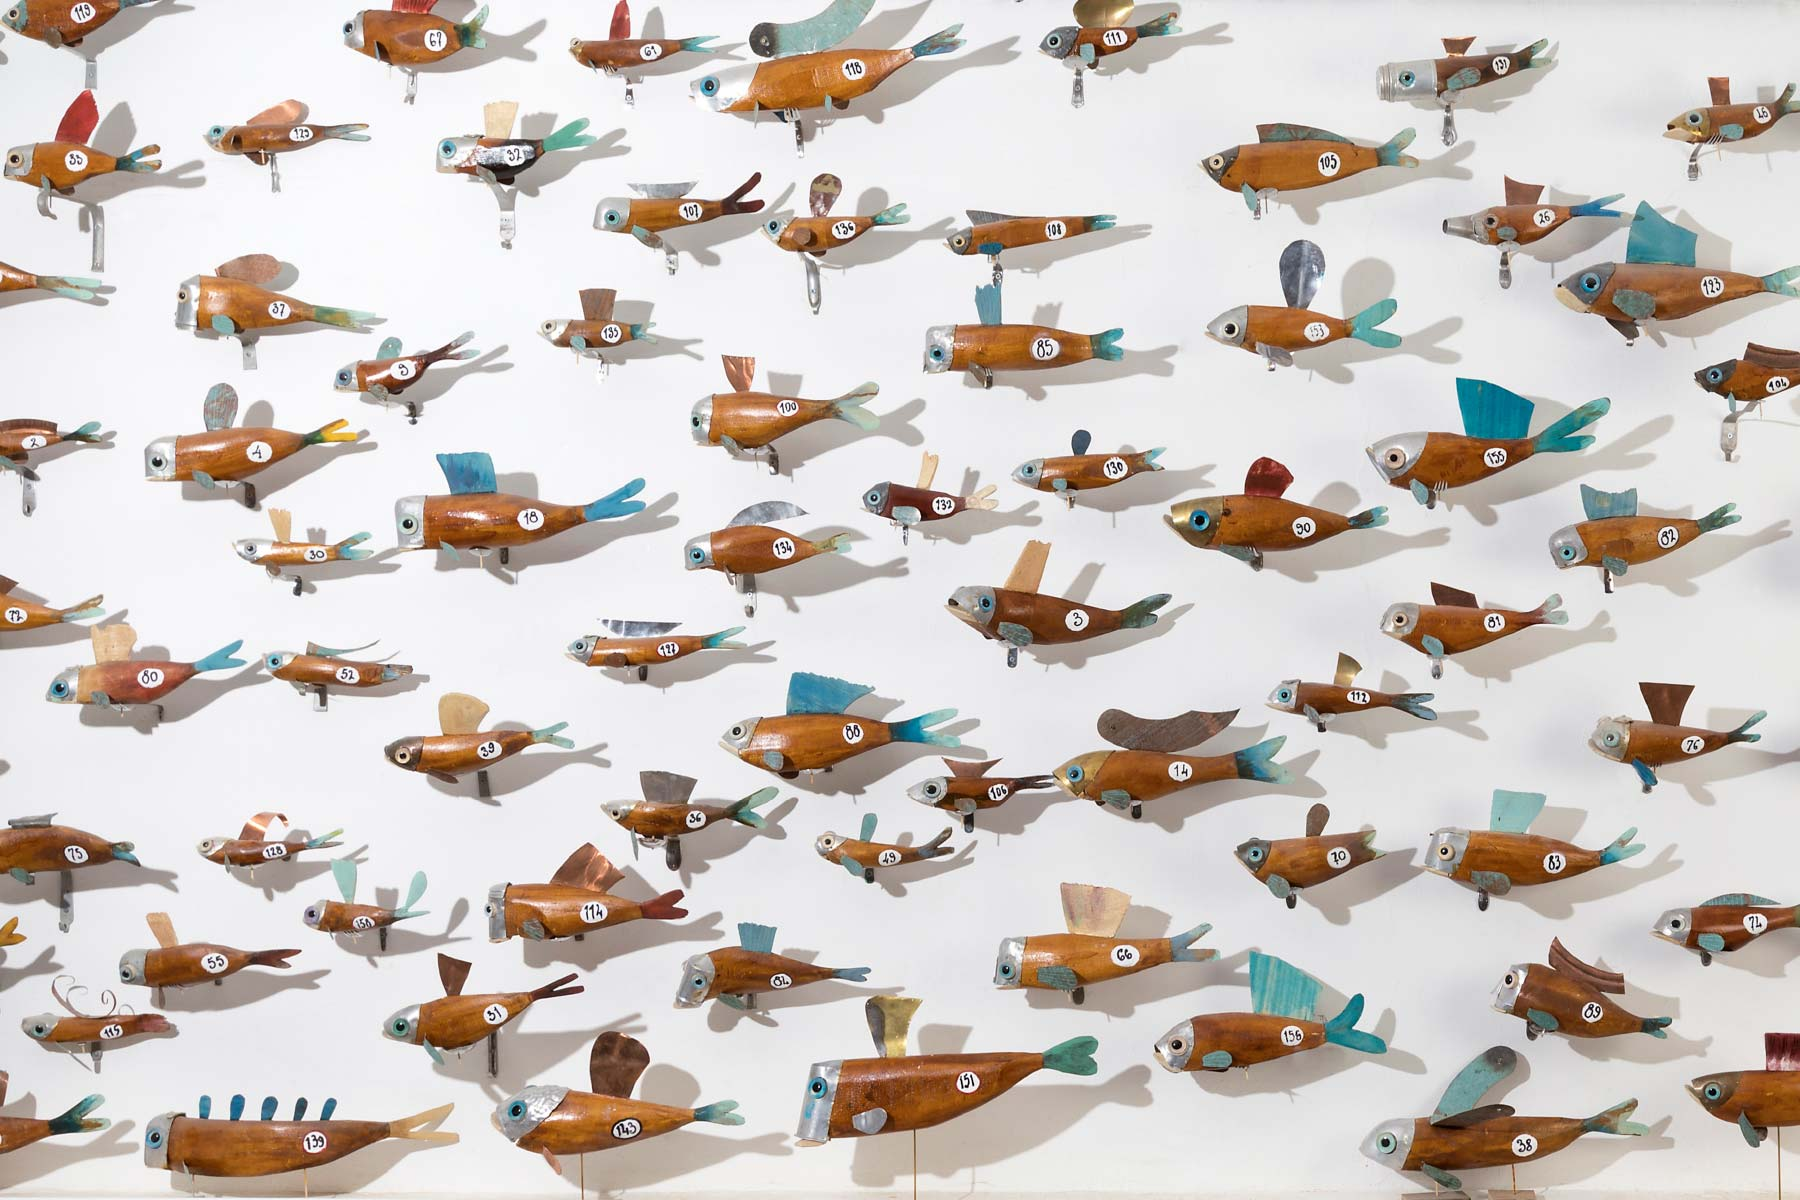 Stefano Prina Wall of Fishes Installation of 170 wooden fish italiano plurale